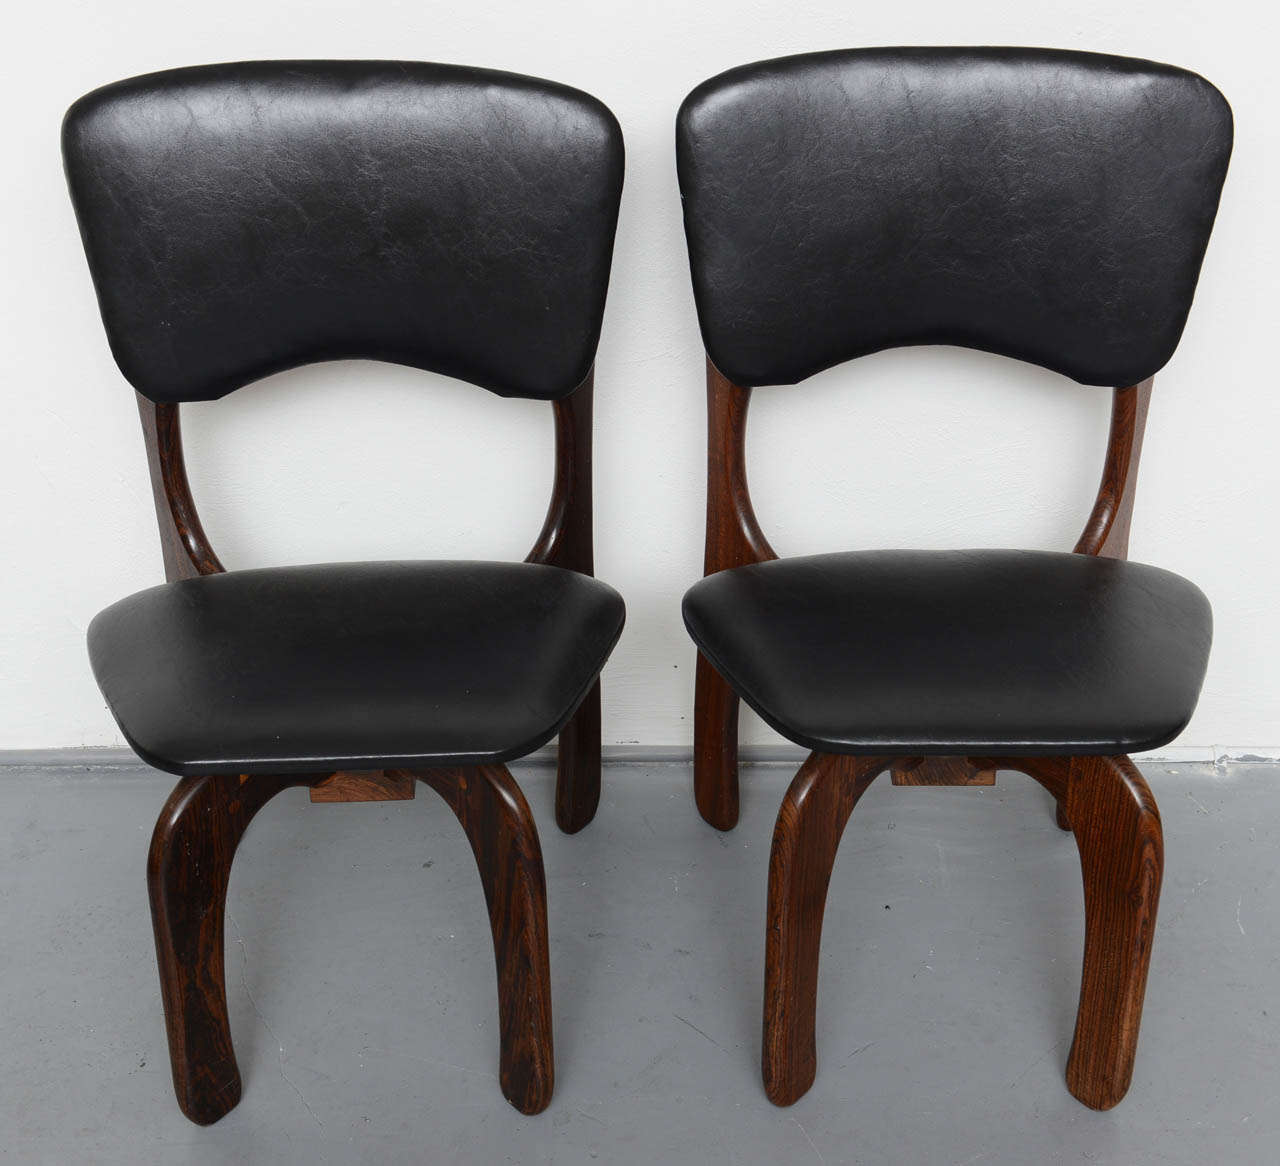 1970s Rosewood Chairs by Don Shoemaker, Mexico 3